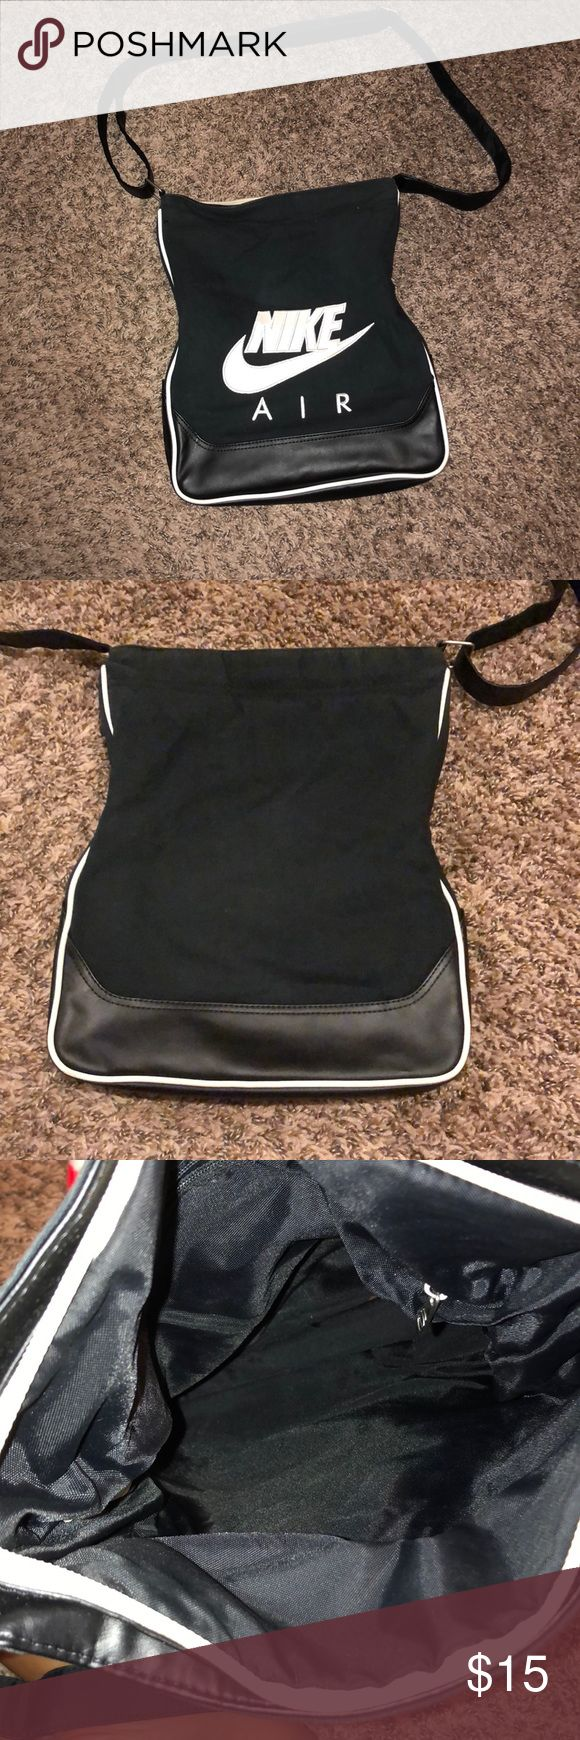 Satchel Nike cross body used but still in great condition no rips or tears or signs of damage. Has an adjustable strap Nike Bags